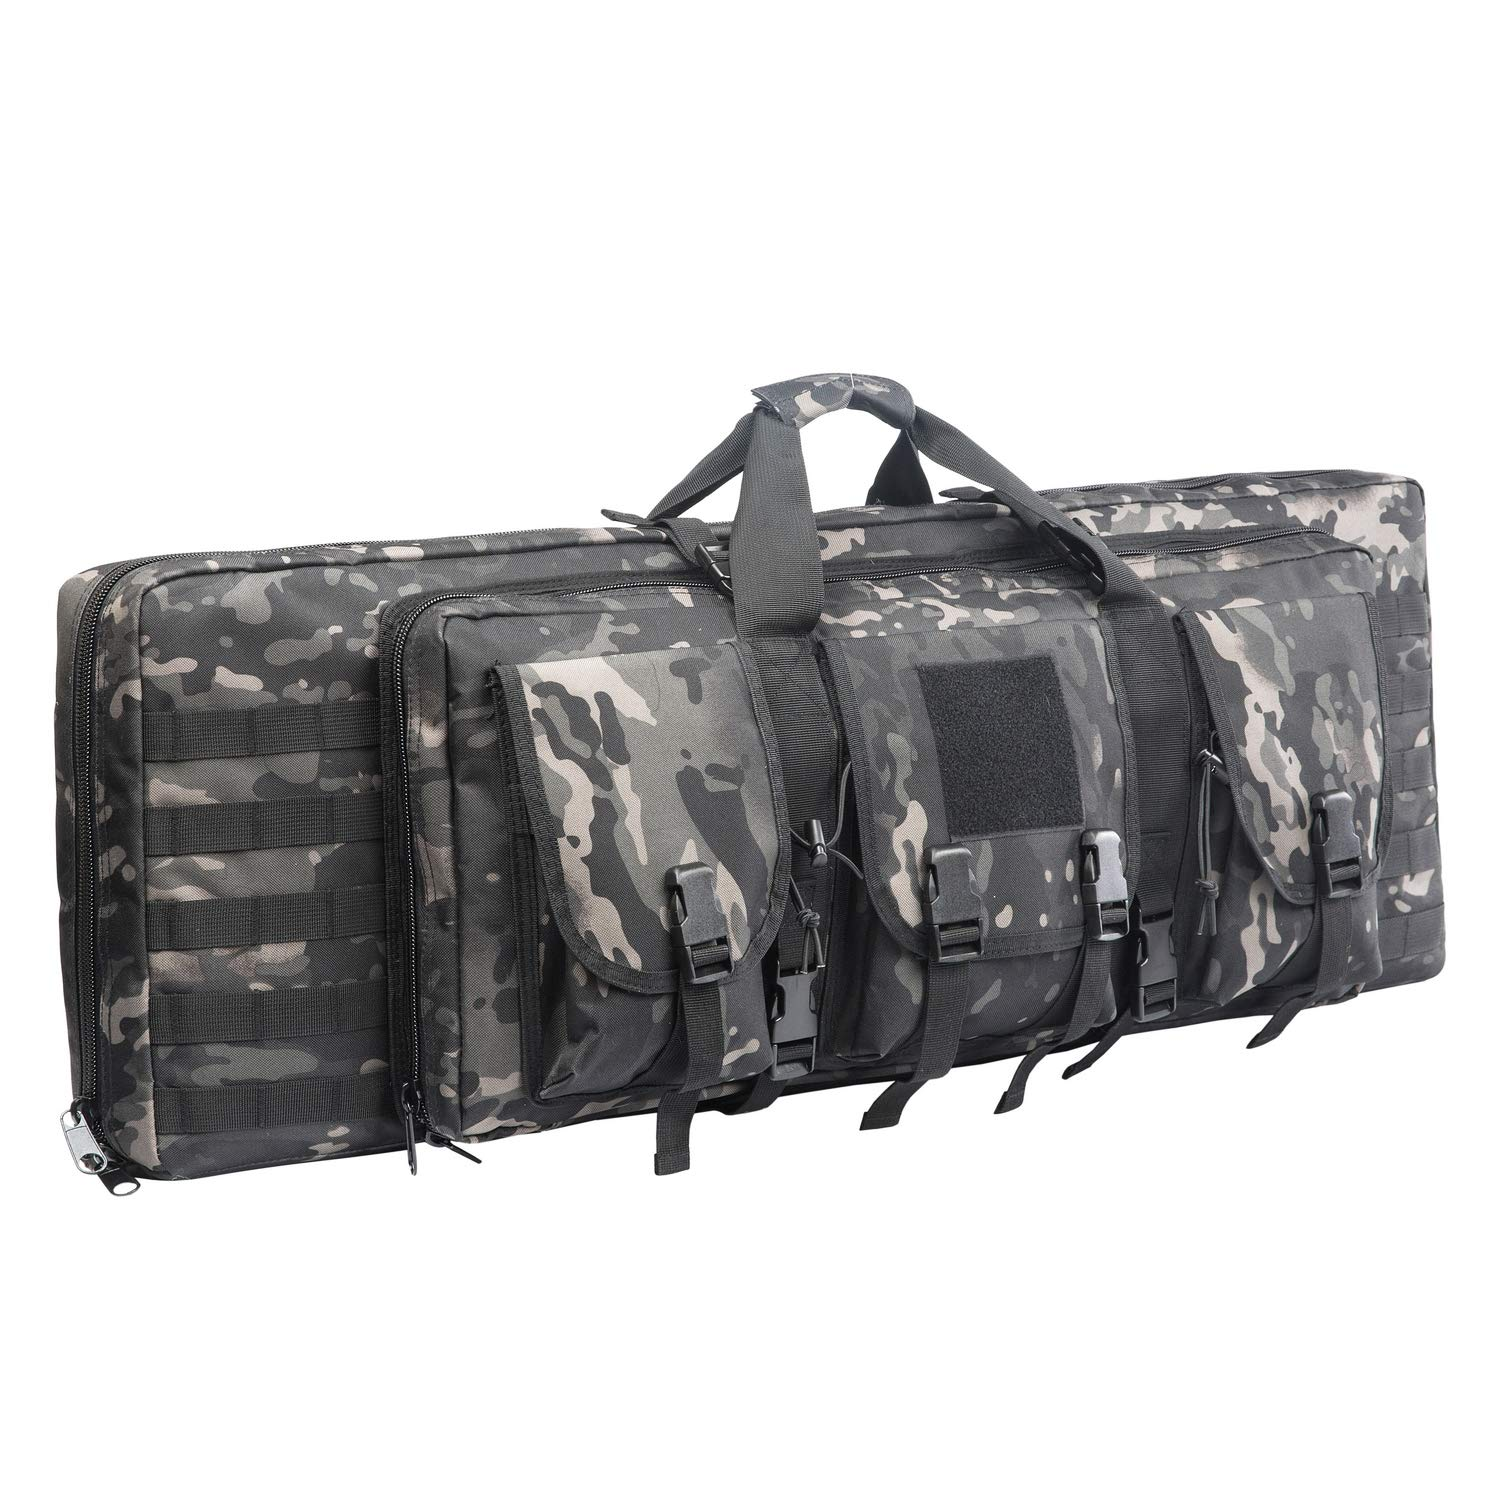 AK47/AR16 Tactical Rifle Case Double Carbine Bag Outdoor Molle Deluxe Double Rifle Gun Bag Padded Long Gun Case & Rifle Storage Backpack(2 Sizes and 6 Colors to chooese from) (BLACK MULTICAM, 38inch) by XWLSPORT